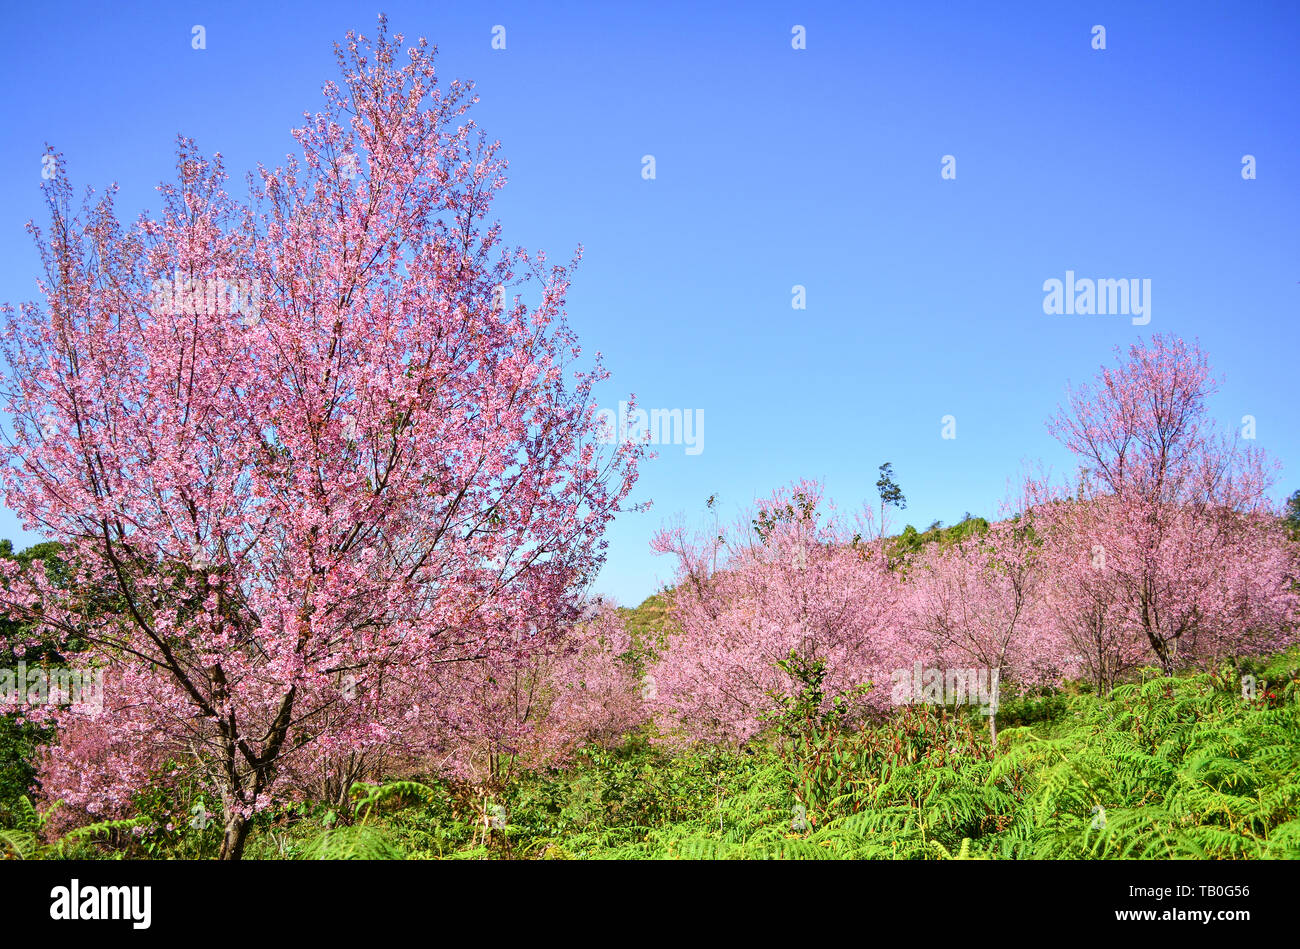 Pink Tree Of Wild Himalayan Cherry Blossom Or Thai Sakura Flower Tree Landscape Mountain Hill In Winter At Phu Lom Lo Loei And Phitsanulok Of Thailand Stock Photo Alamy